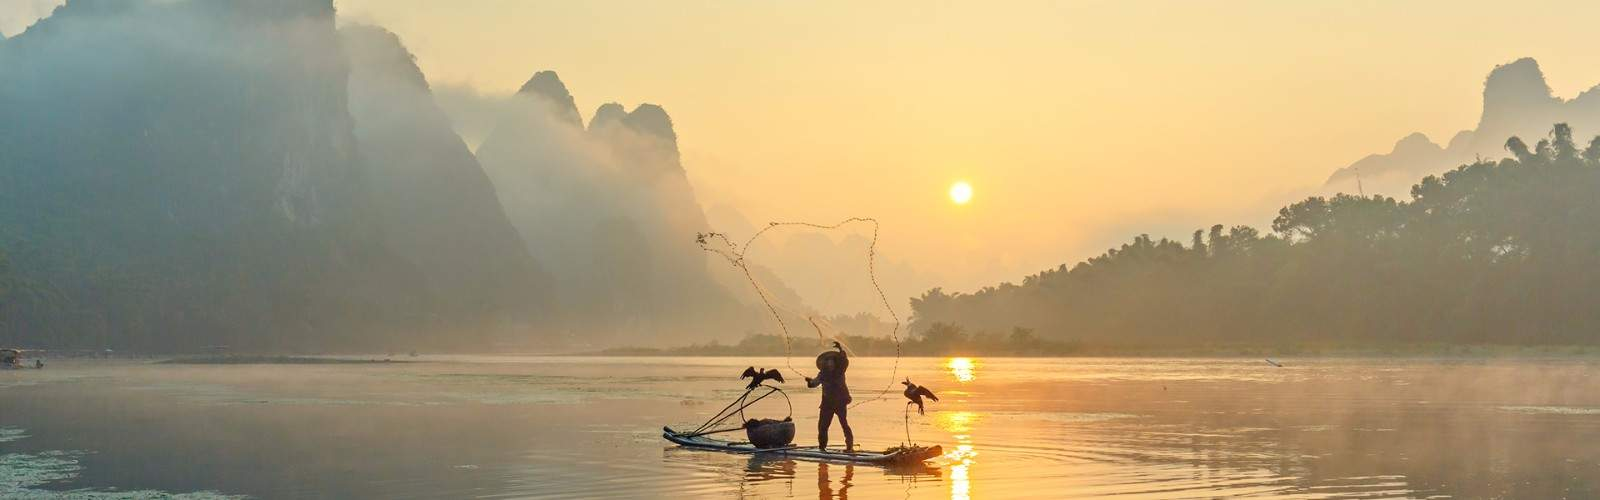 Guilin Private Day Tour Tour | Wendy Wu Tours